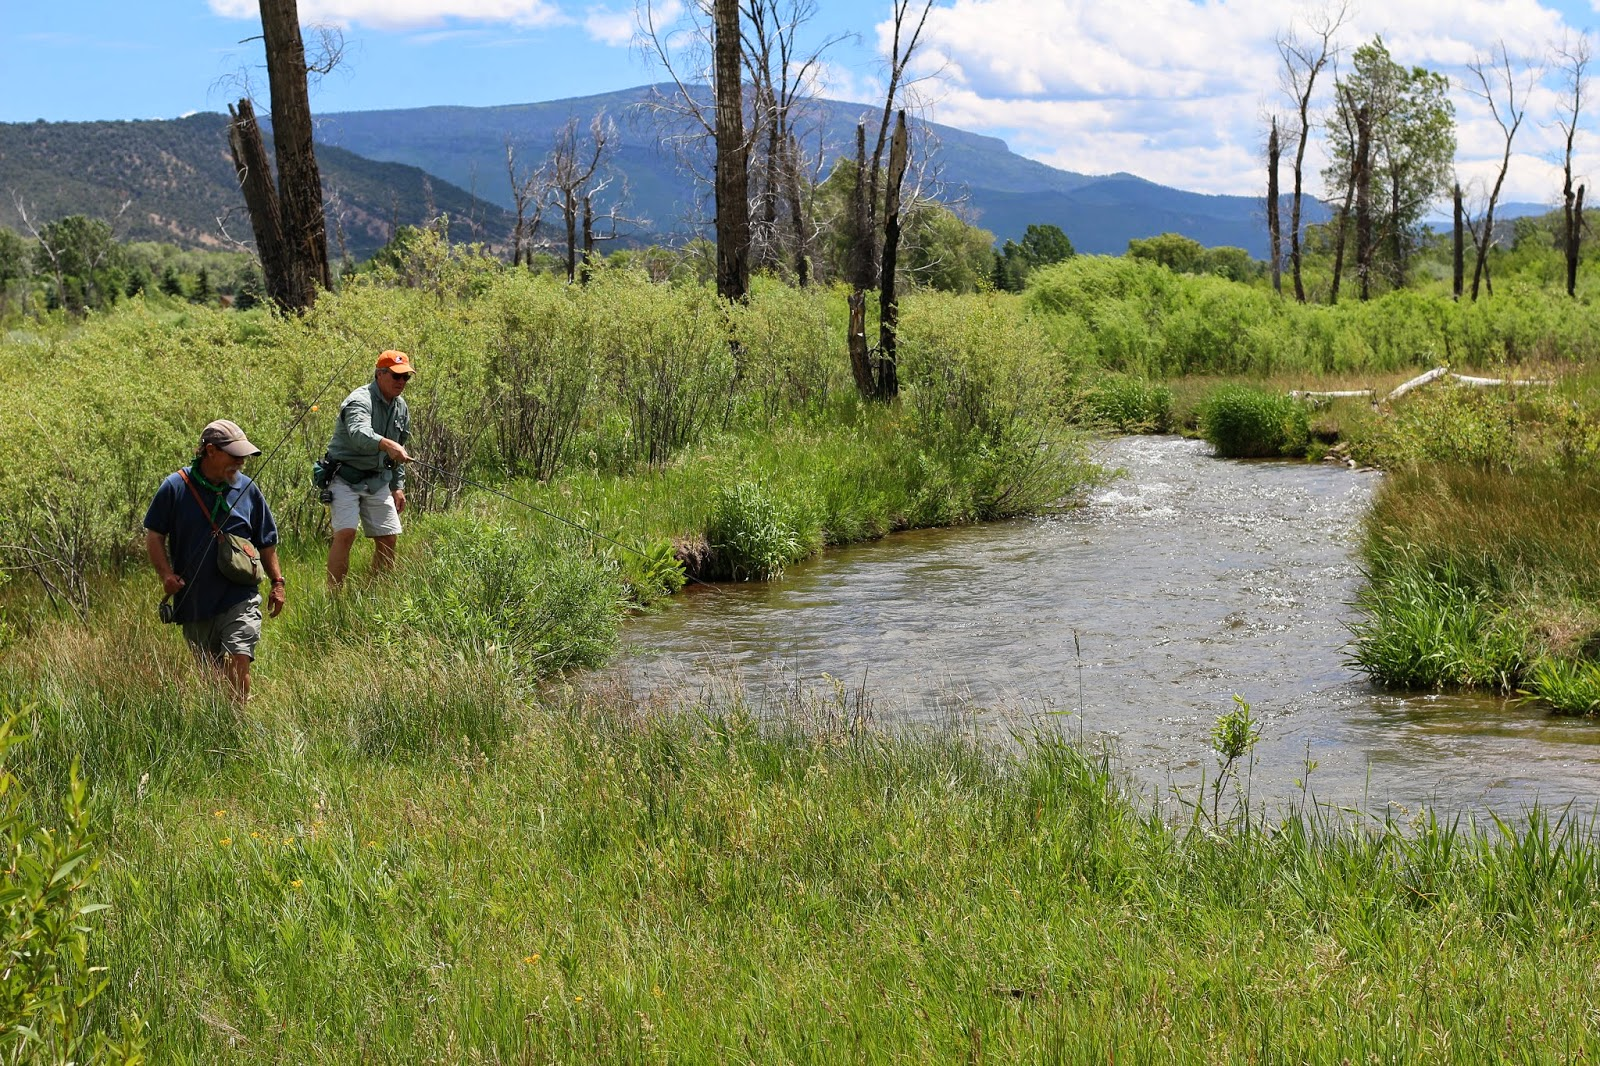 Fly+Fish+for+brown+trout+in+Colorado+with+Jay+Scott+Outdoors+6.JPG